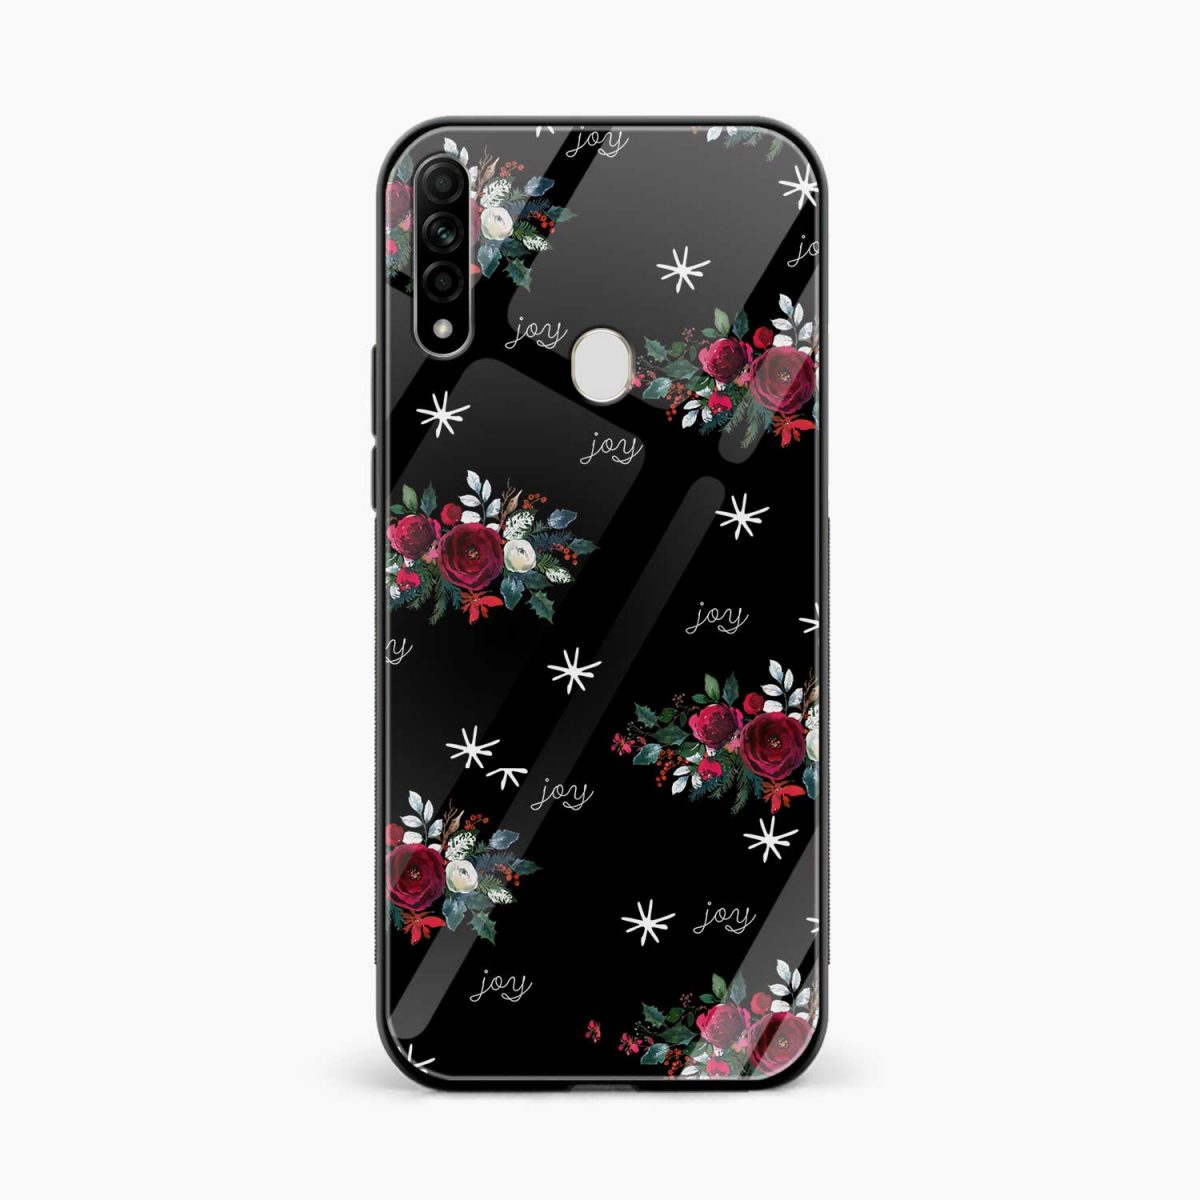 joy floral black colored front view oppo a31 back cover